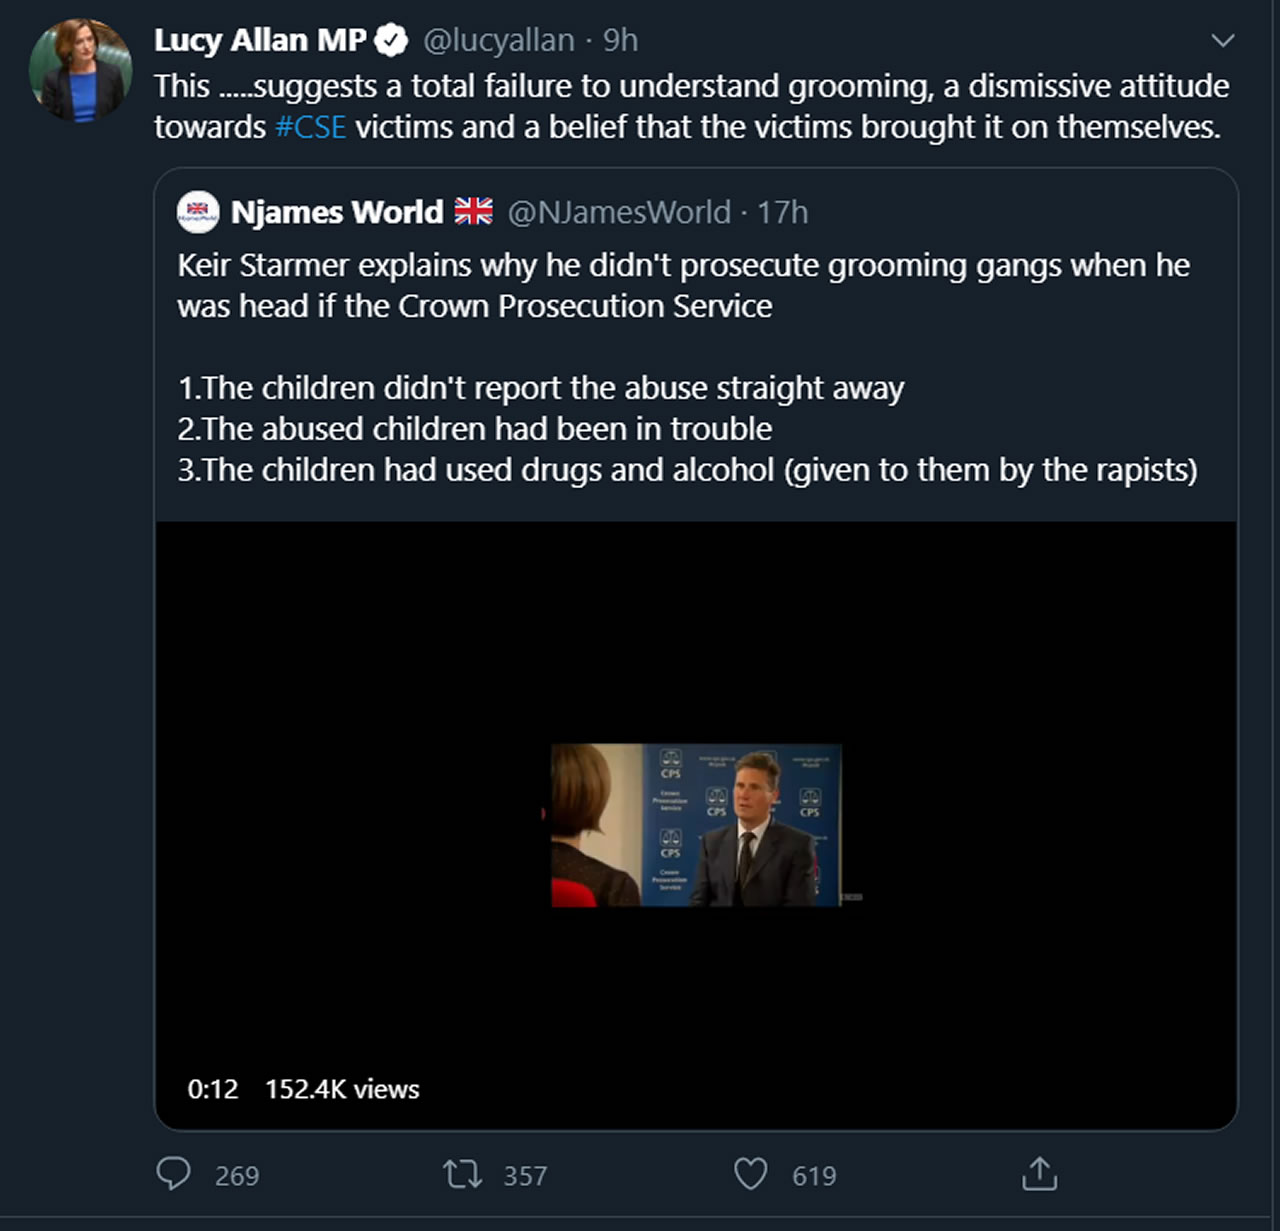 Lucy Allan MP attempts to defame Keir Starmer on Twitter with an edited video.